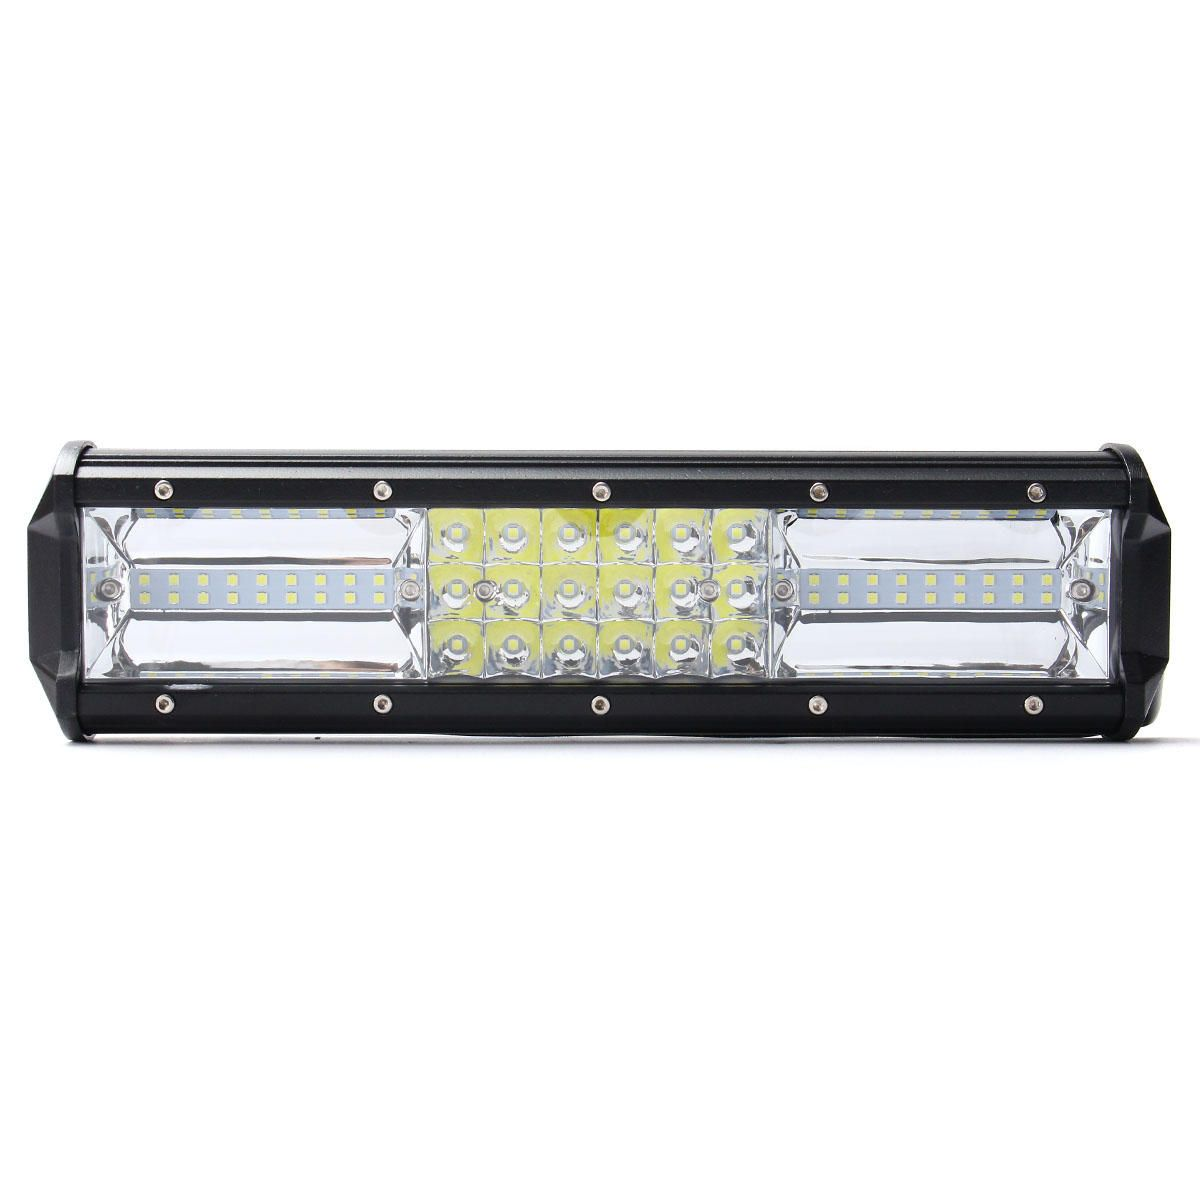 12 Inch 324w Led Light Bar Flood Spot Combo Off Road Car Truck 10 30v Waterproof Ip68 Bar Lighting Cars Trucks Car Led Lights